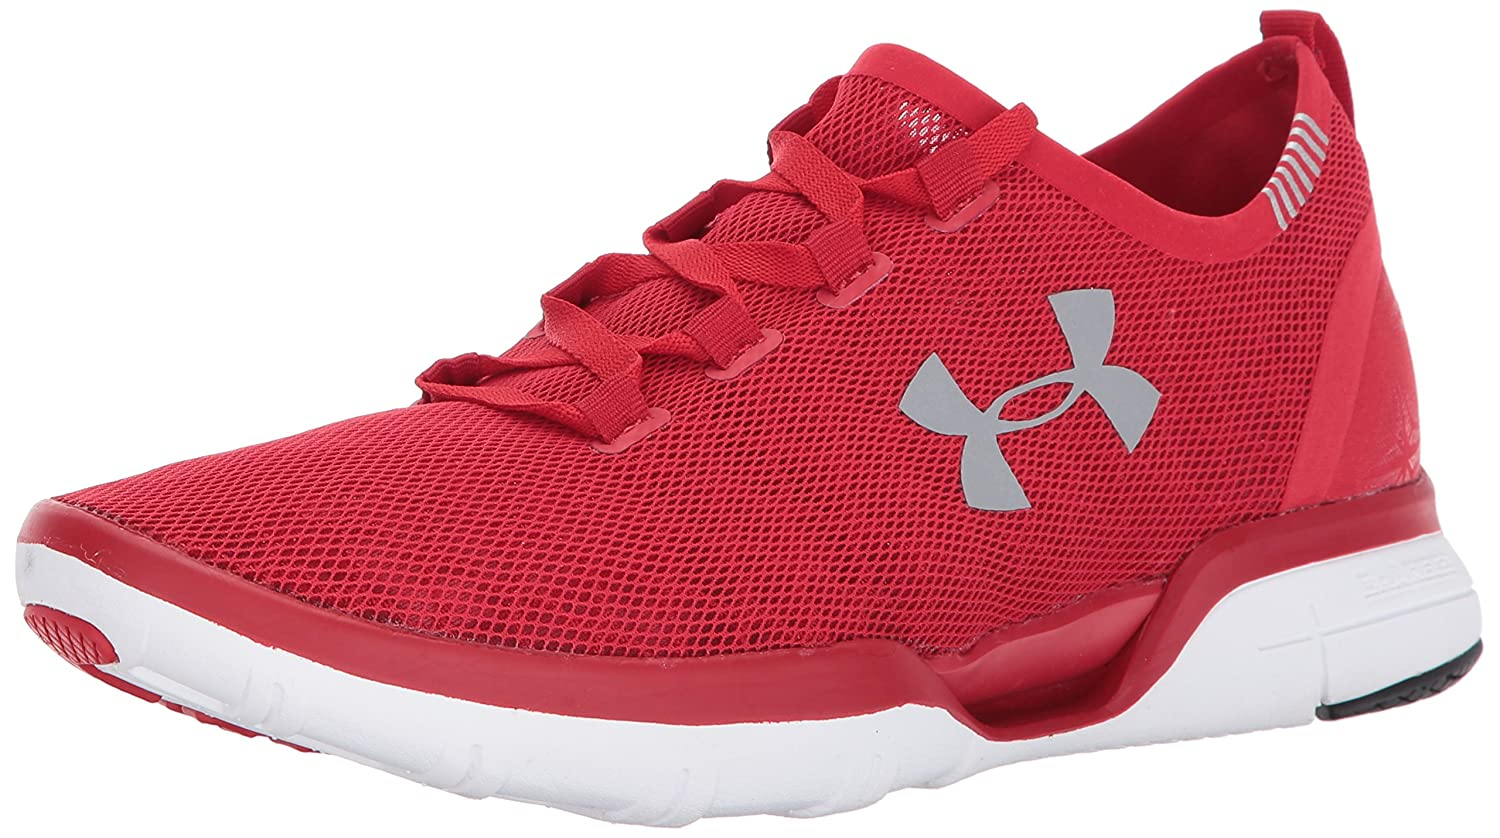 Under Armour Men's Charged CoolSwitch Running Shoe B01NCEMPC1 12.5 M US|Red (600)/White